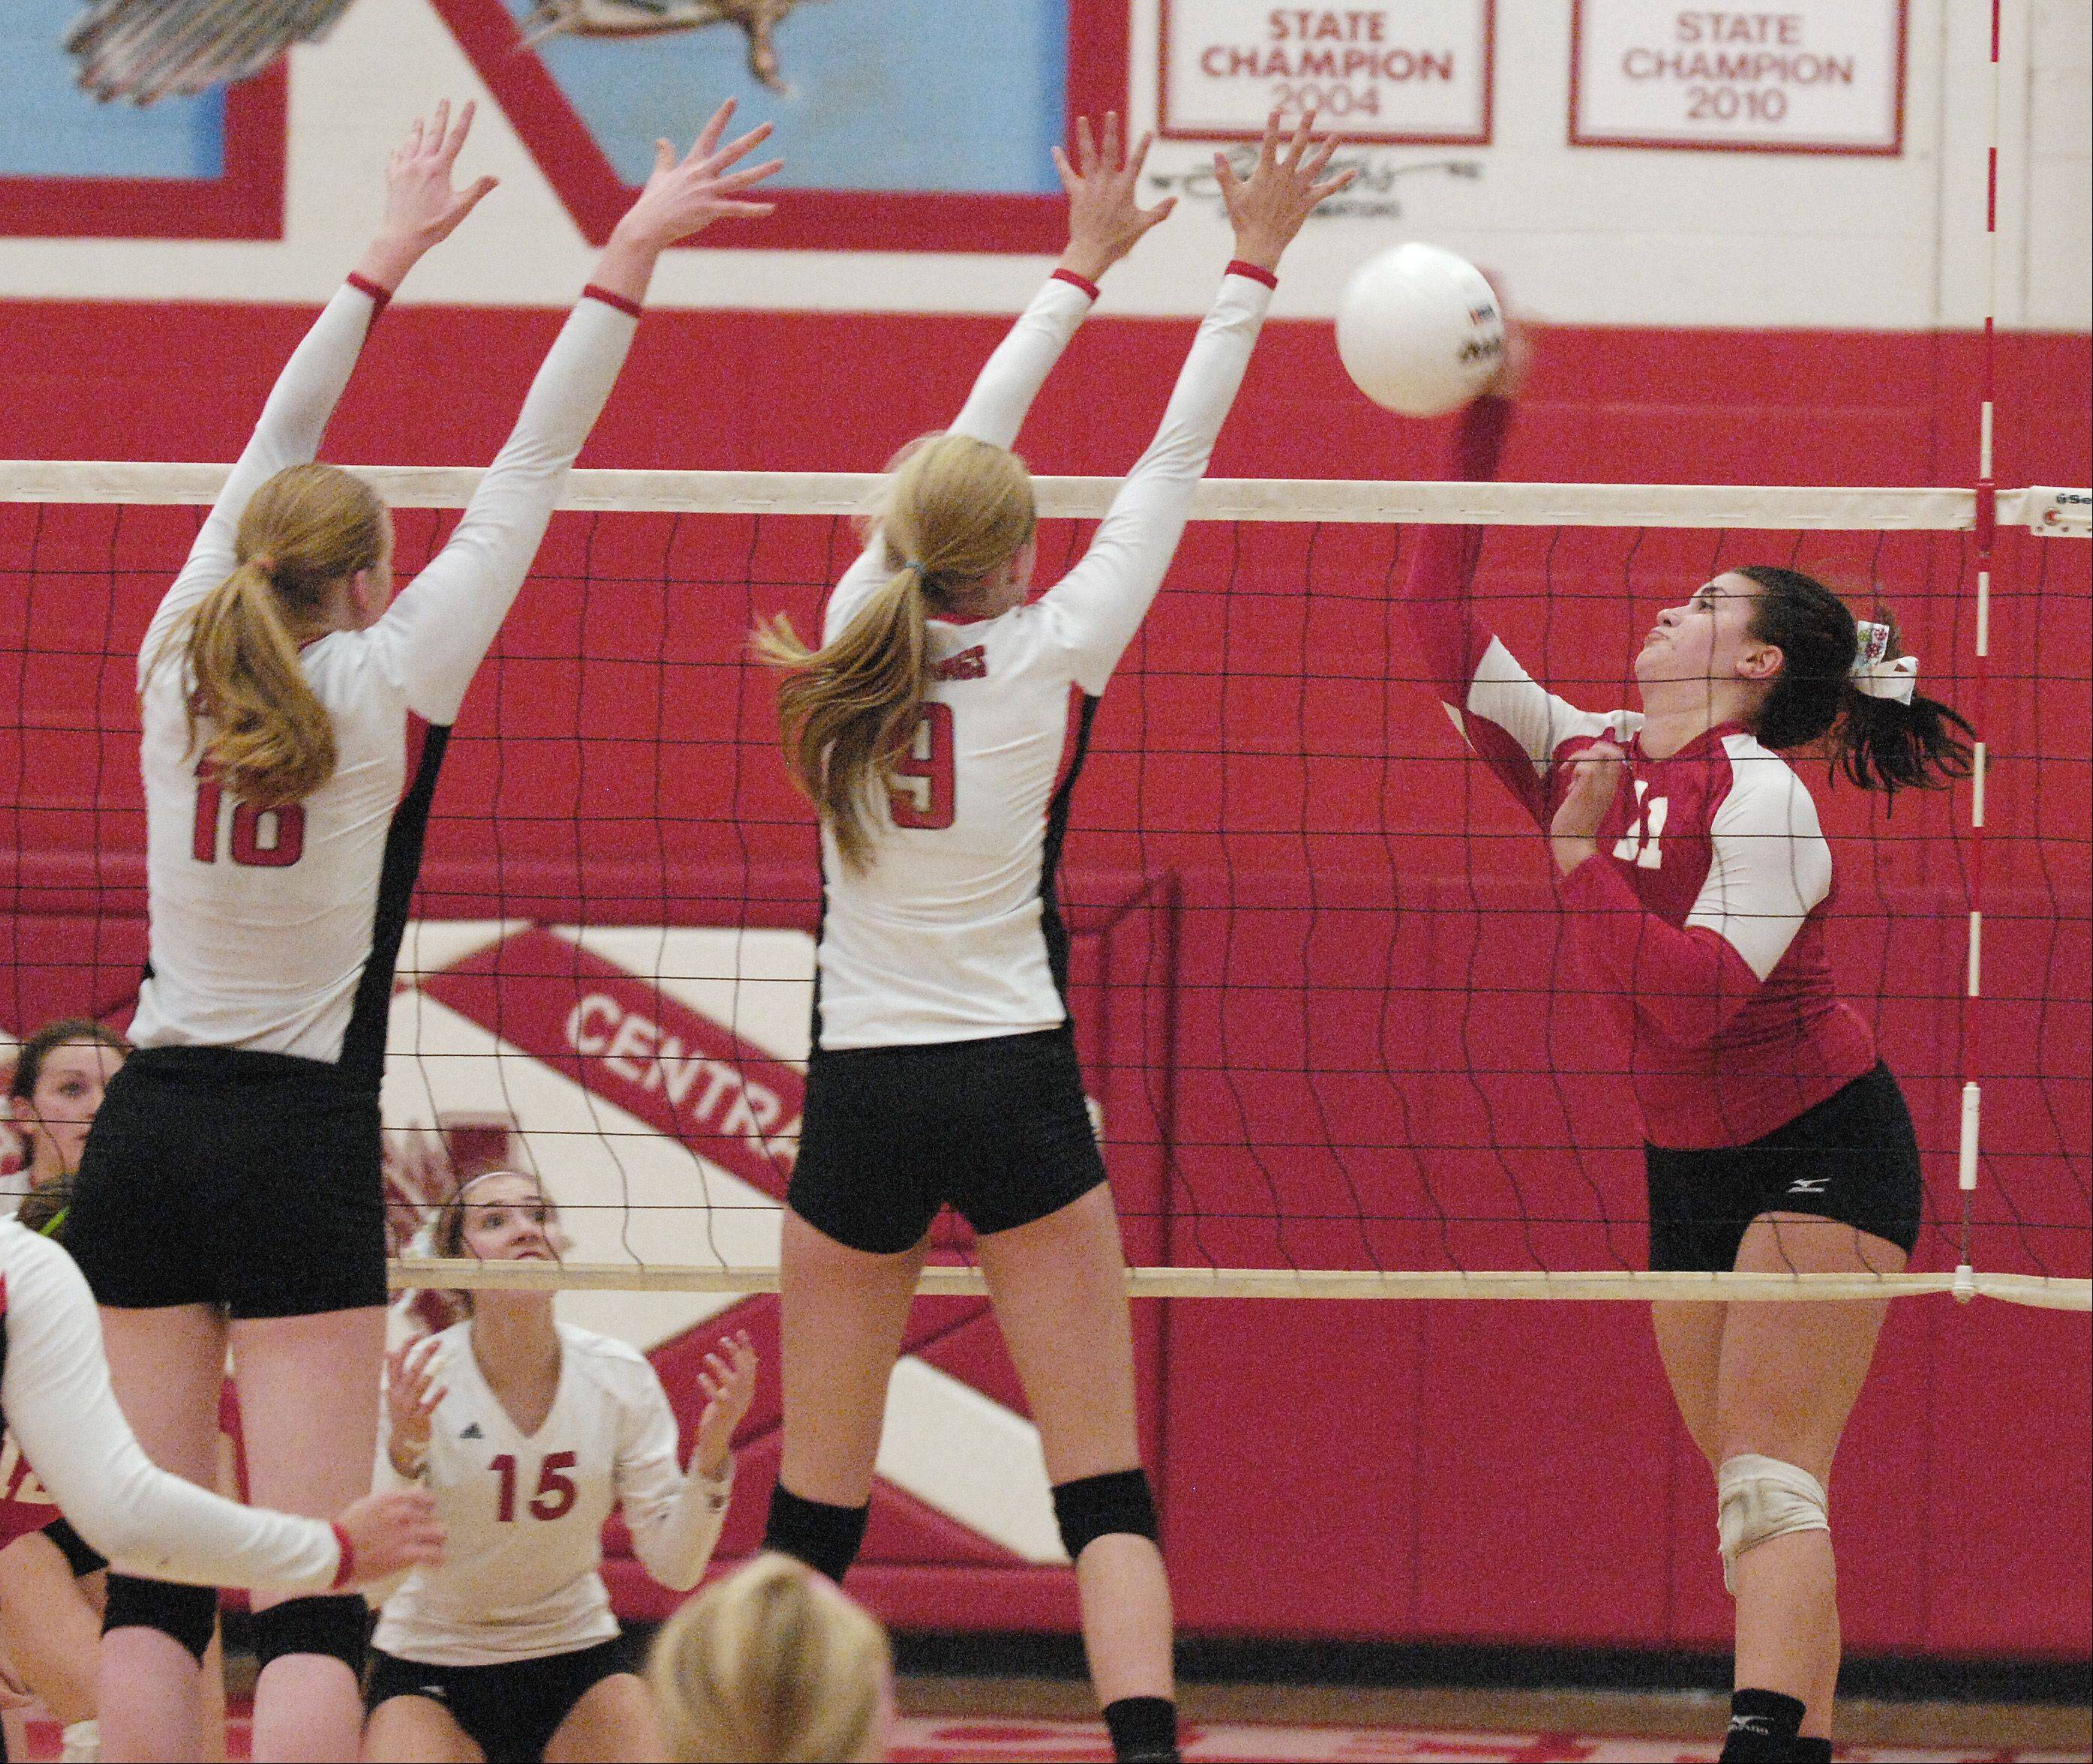 Rachael Fara and Abby Willett of Benet Academy attempt to block as shot by Maddie Siambekos of Naperville Central during the Redwings 2-0 win of the girls Class 4A regional final in Naperville, Thursday.